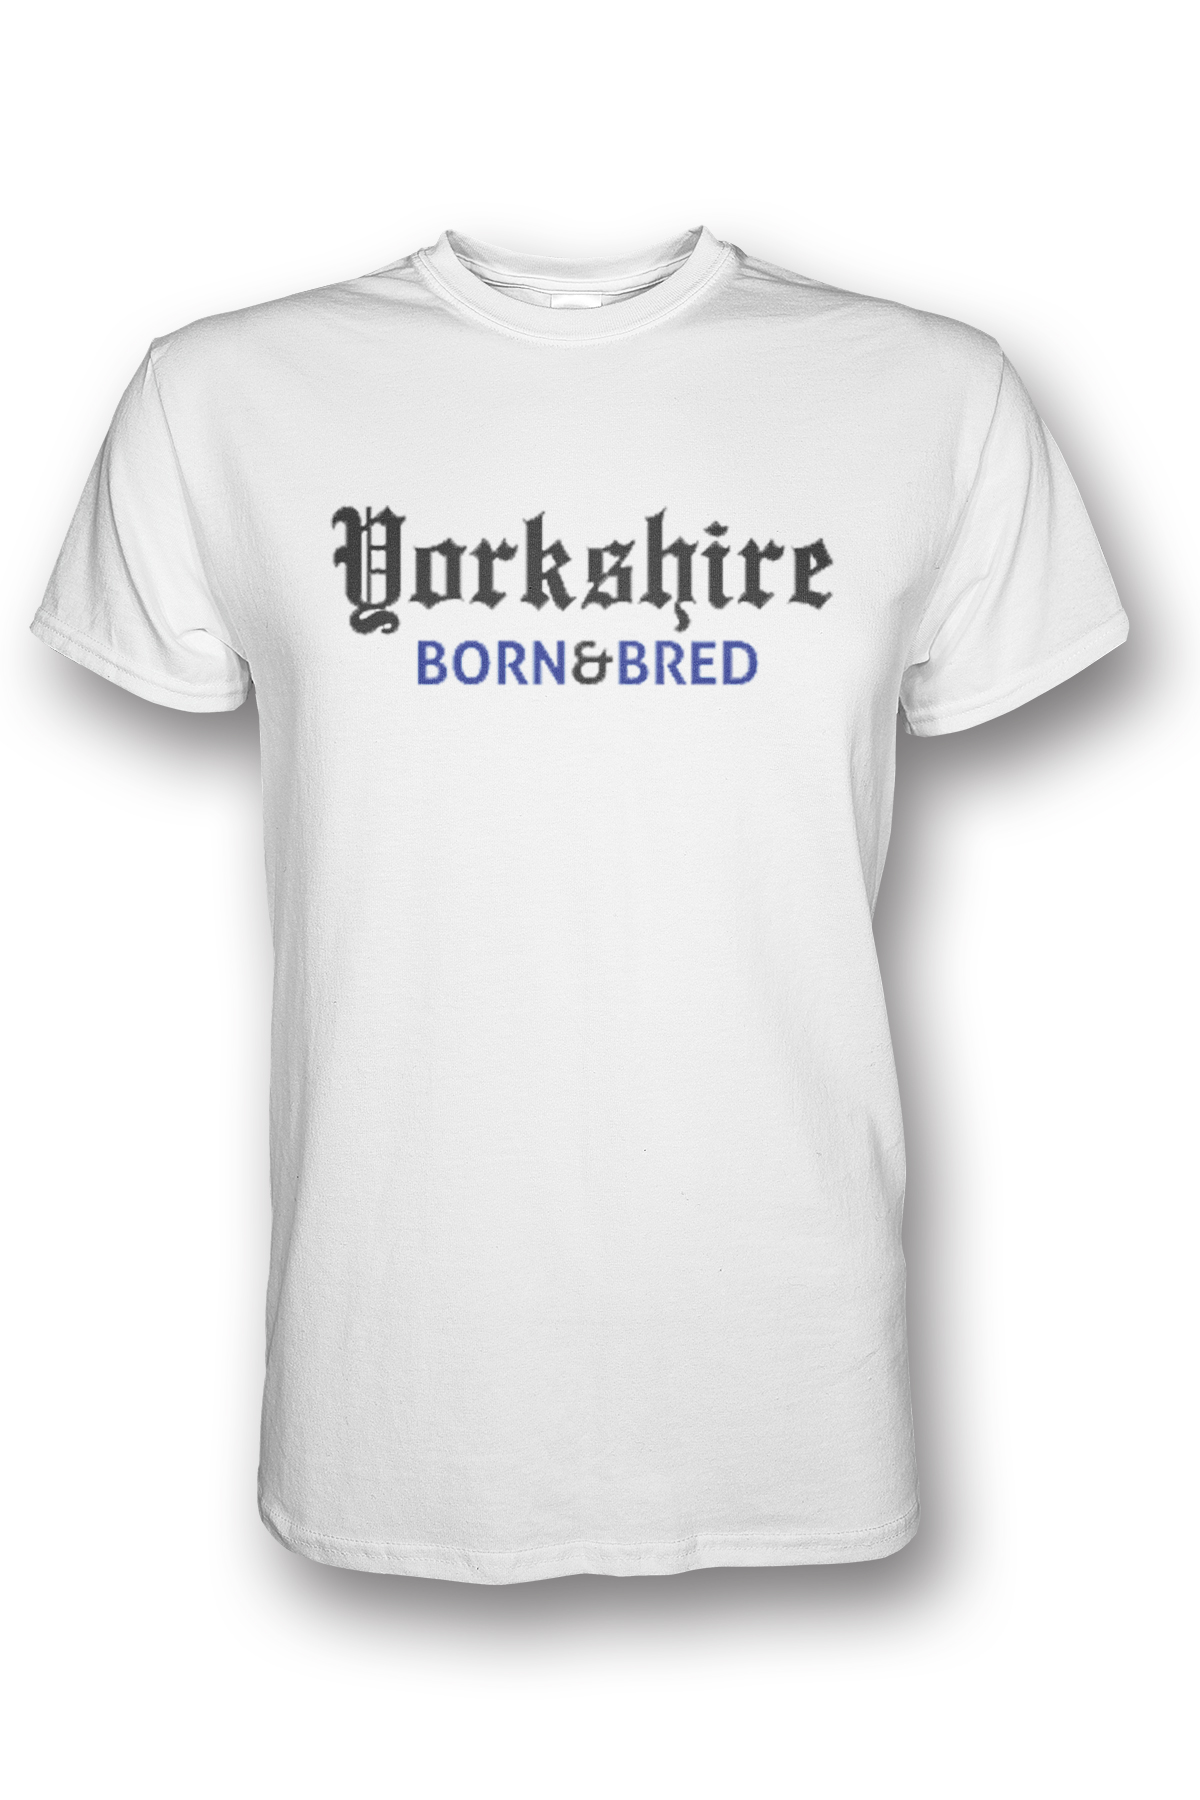 yorkshire Born and Bred T-Shirt